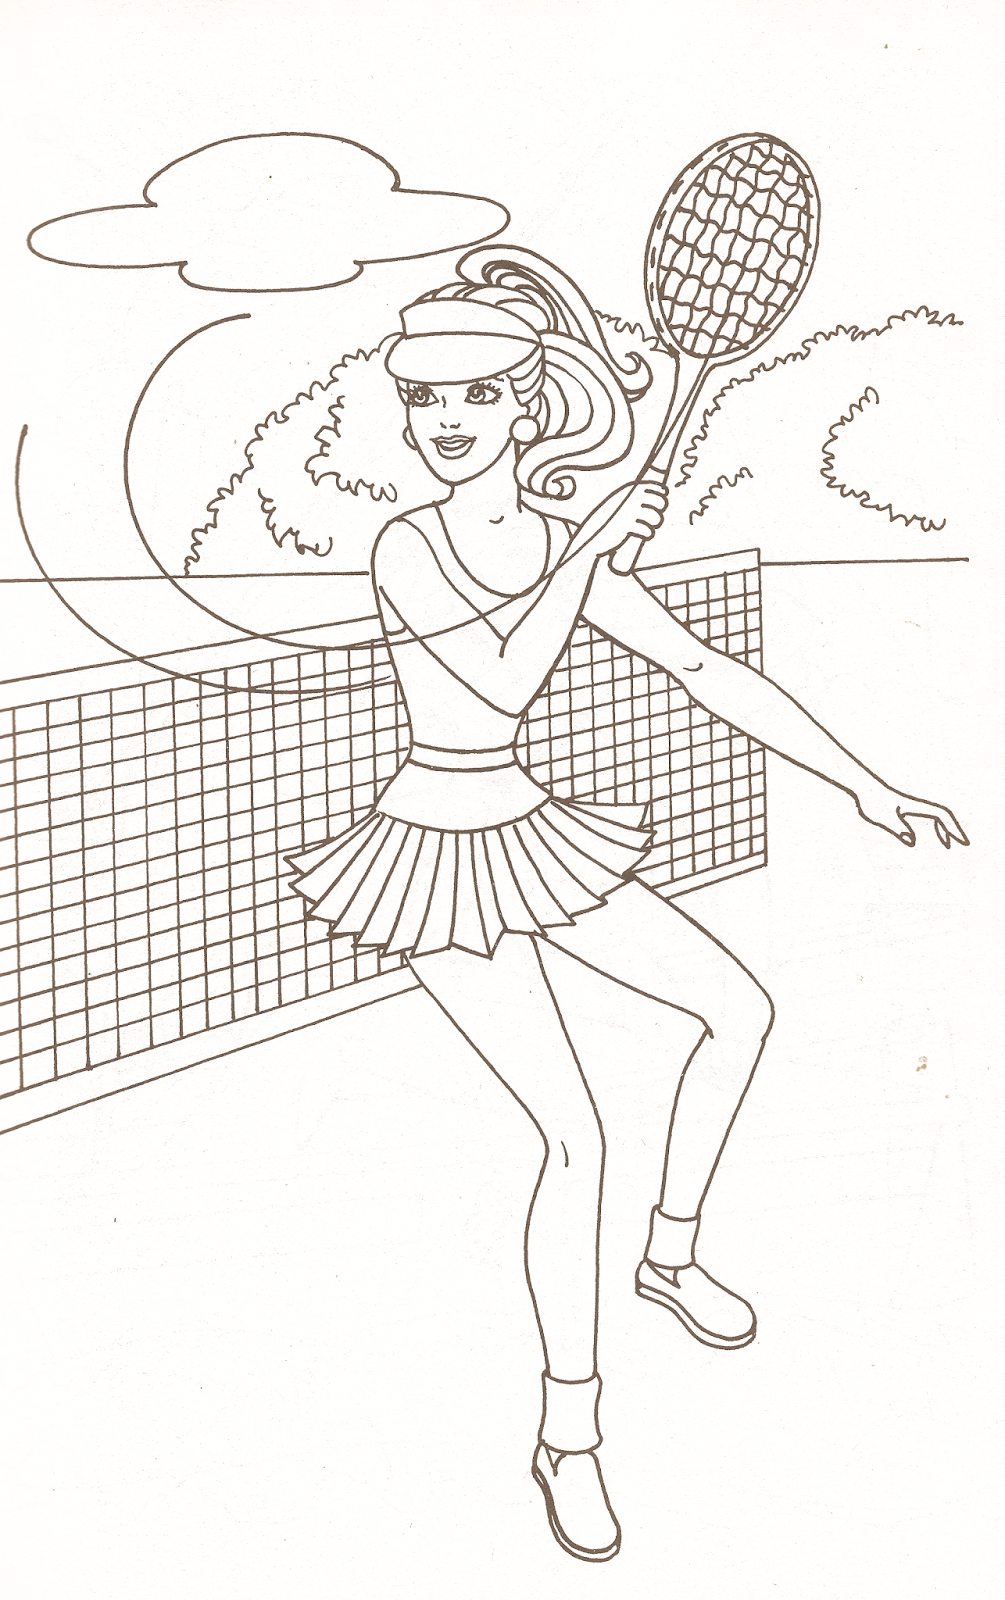 Miss Missy Paper Dolls: Barbie Coloring Pages Part 1 | Color iT - My ...